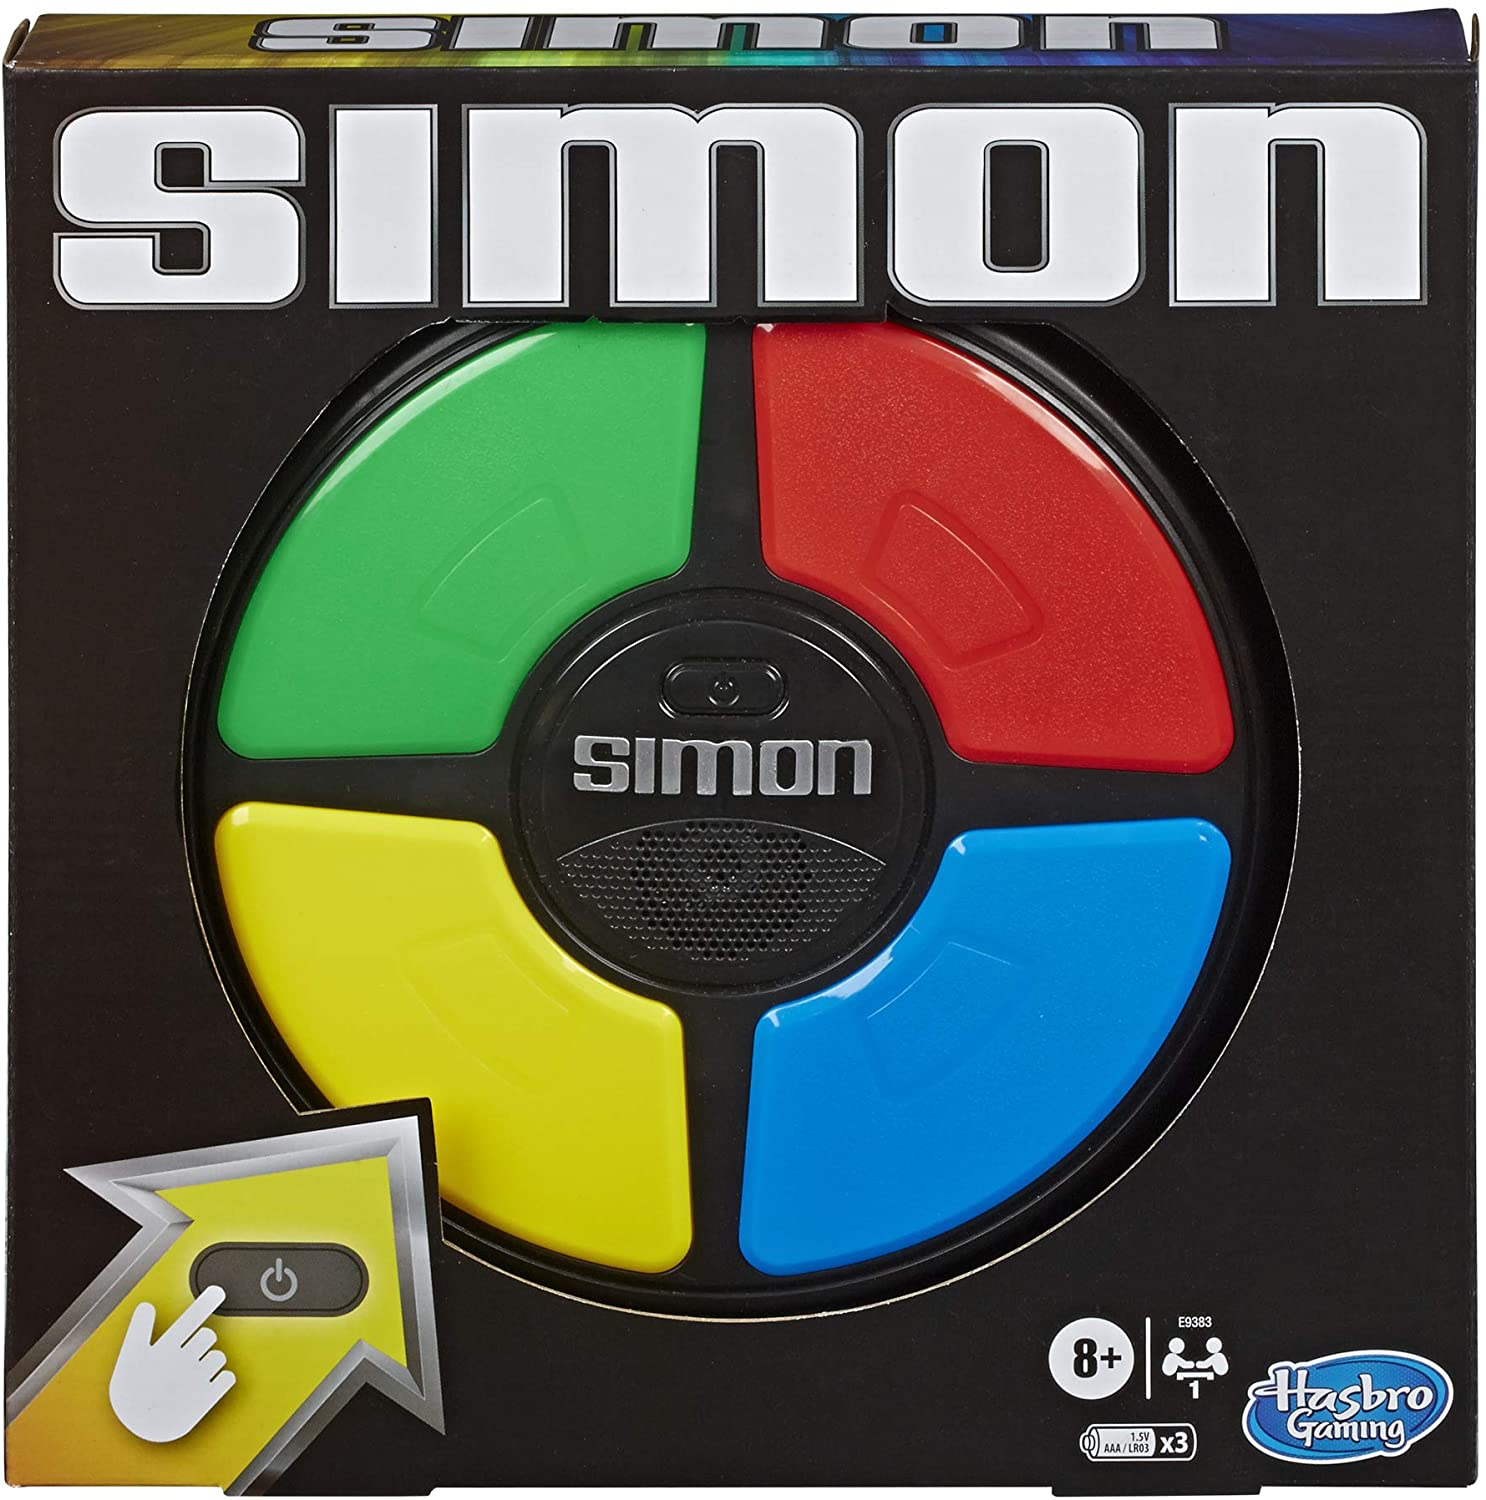 Simon Game; Electronic Memory Game for Kids Ages 8 and Up; Handheld Game with Lights and Sounds; Classic Simon Gameplay